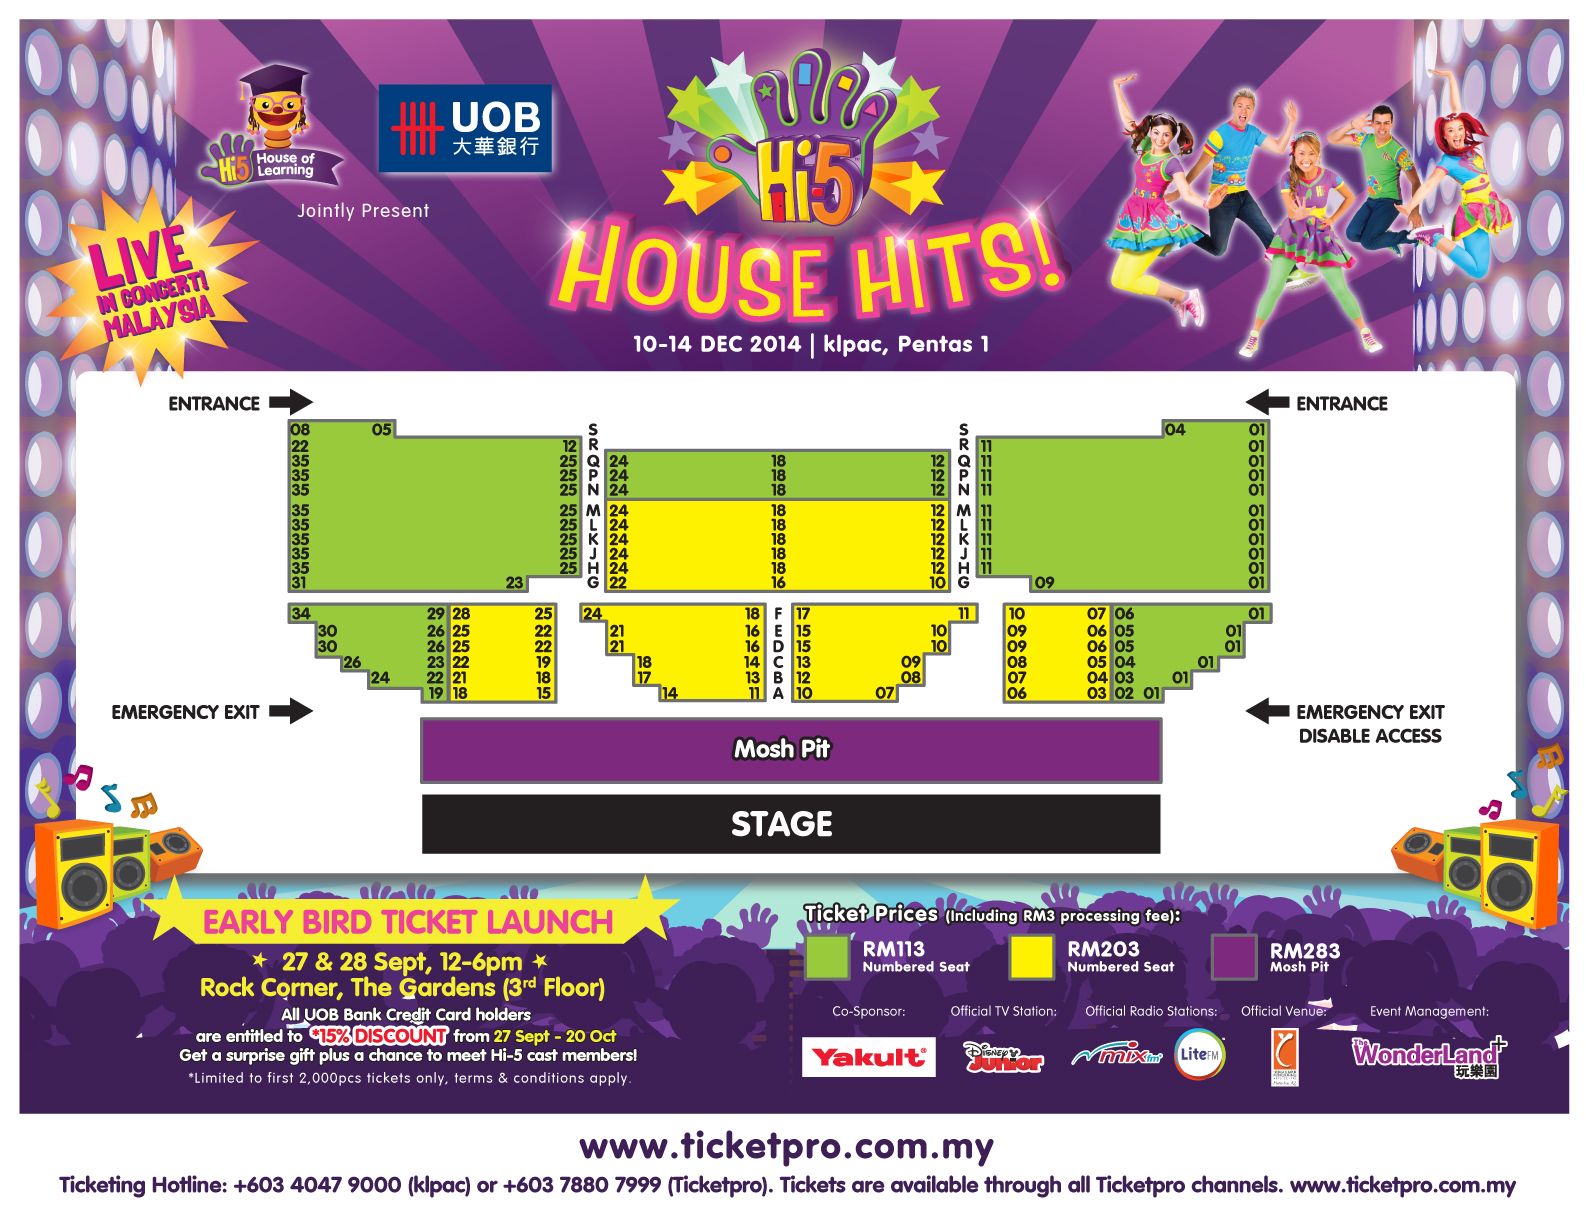 HI-5 HOUSE HITS 2014 LIVE IN MALAYSIA Seating Plan